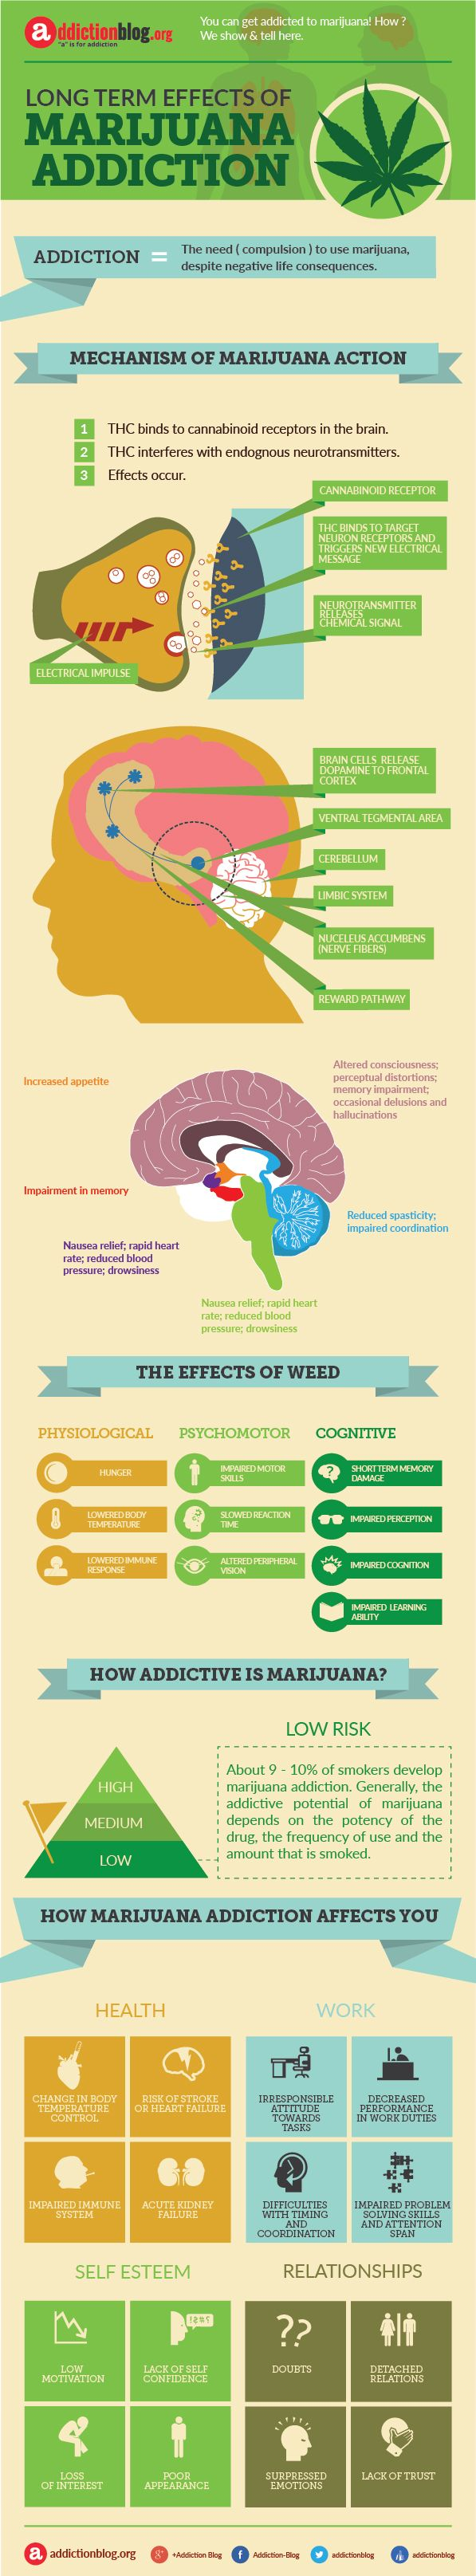 what are the long term effects of weed